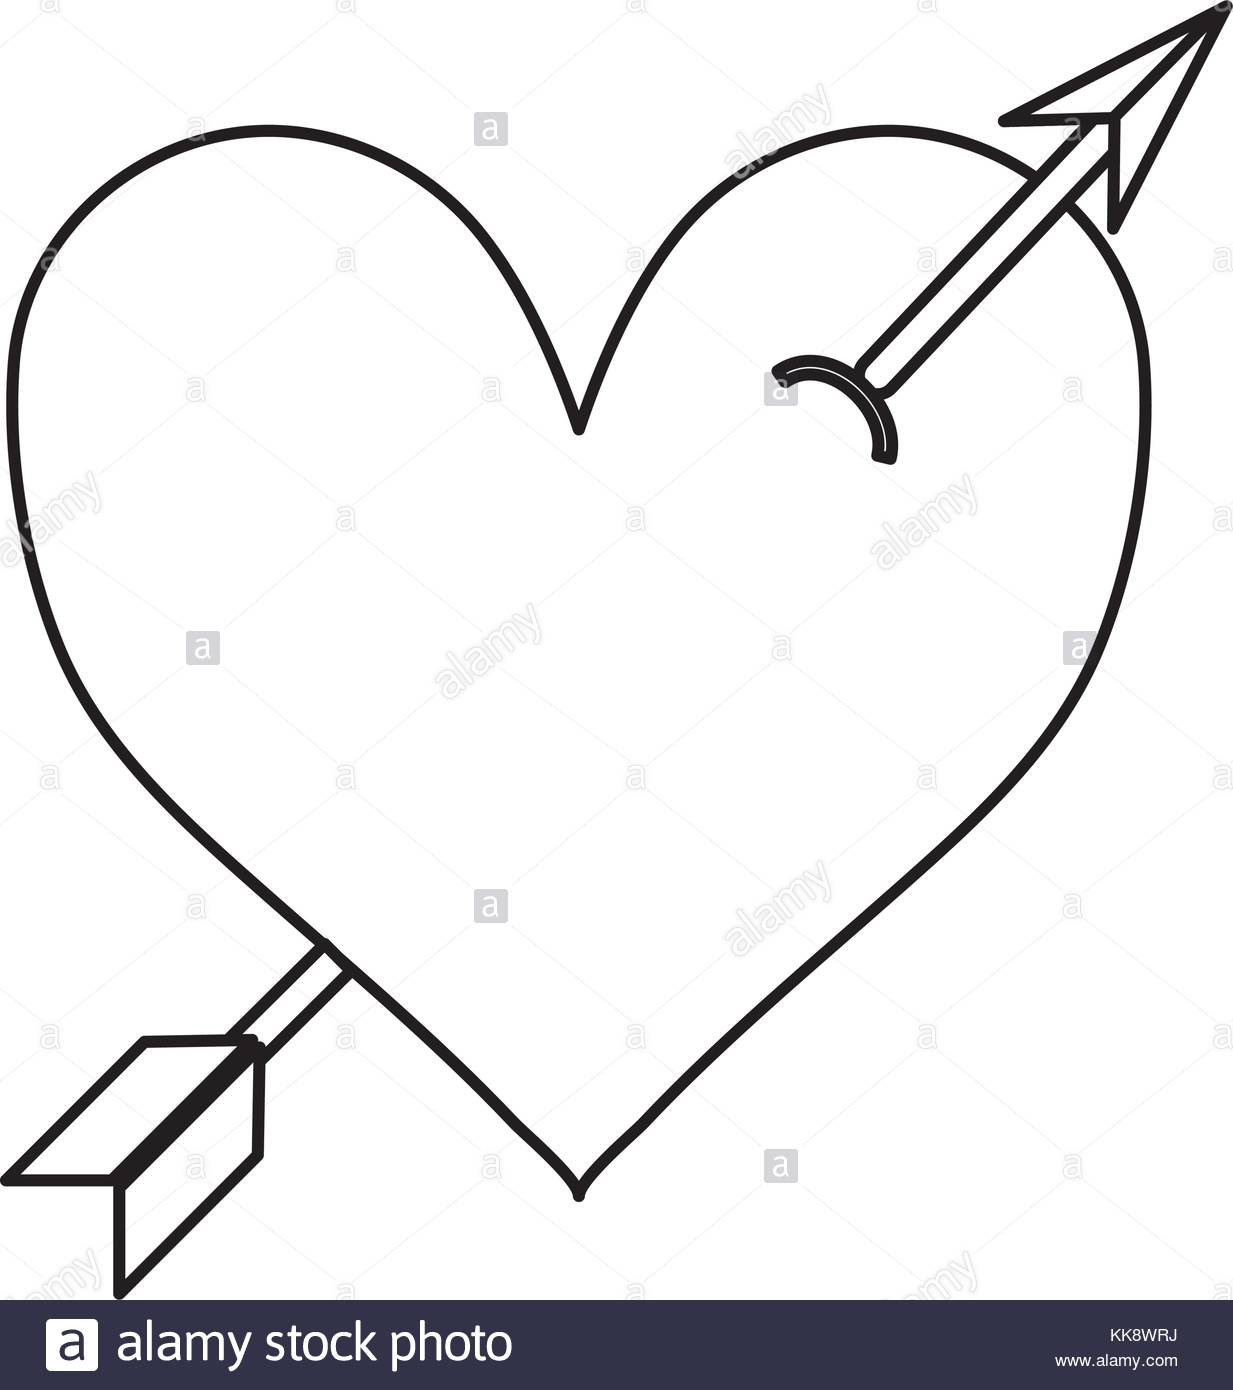 1233x1390 Heart With Arrow Black And White Stock Photos Amp Images